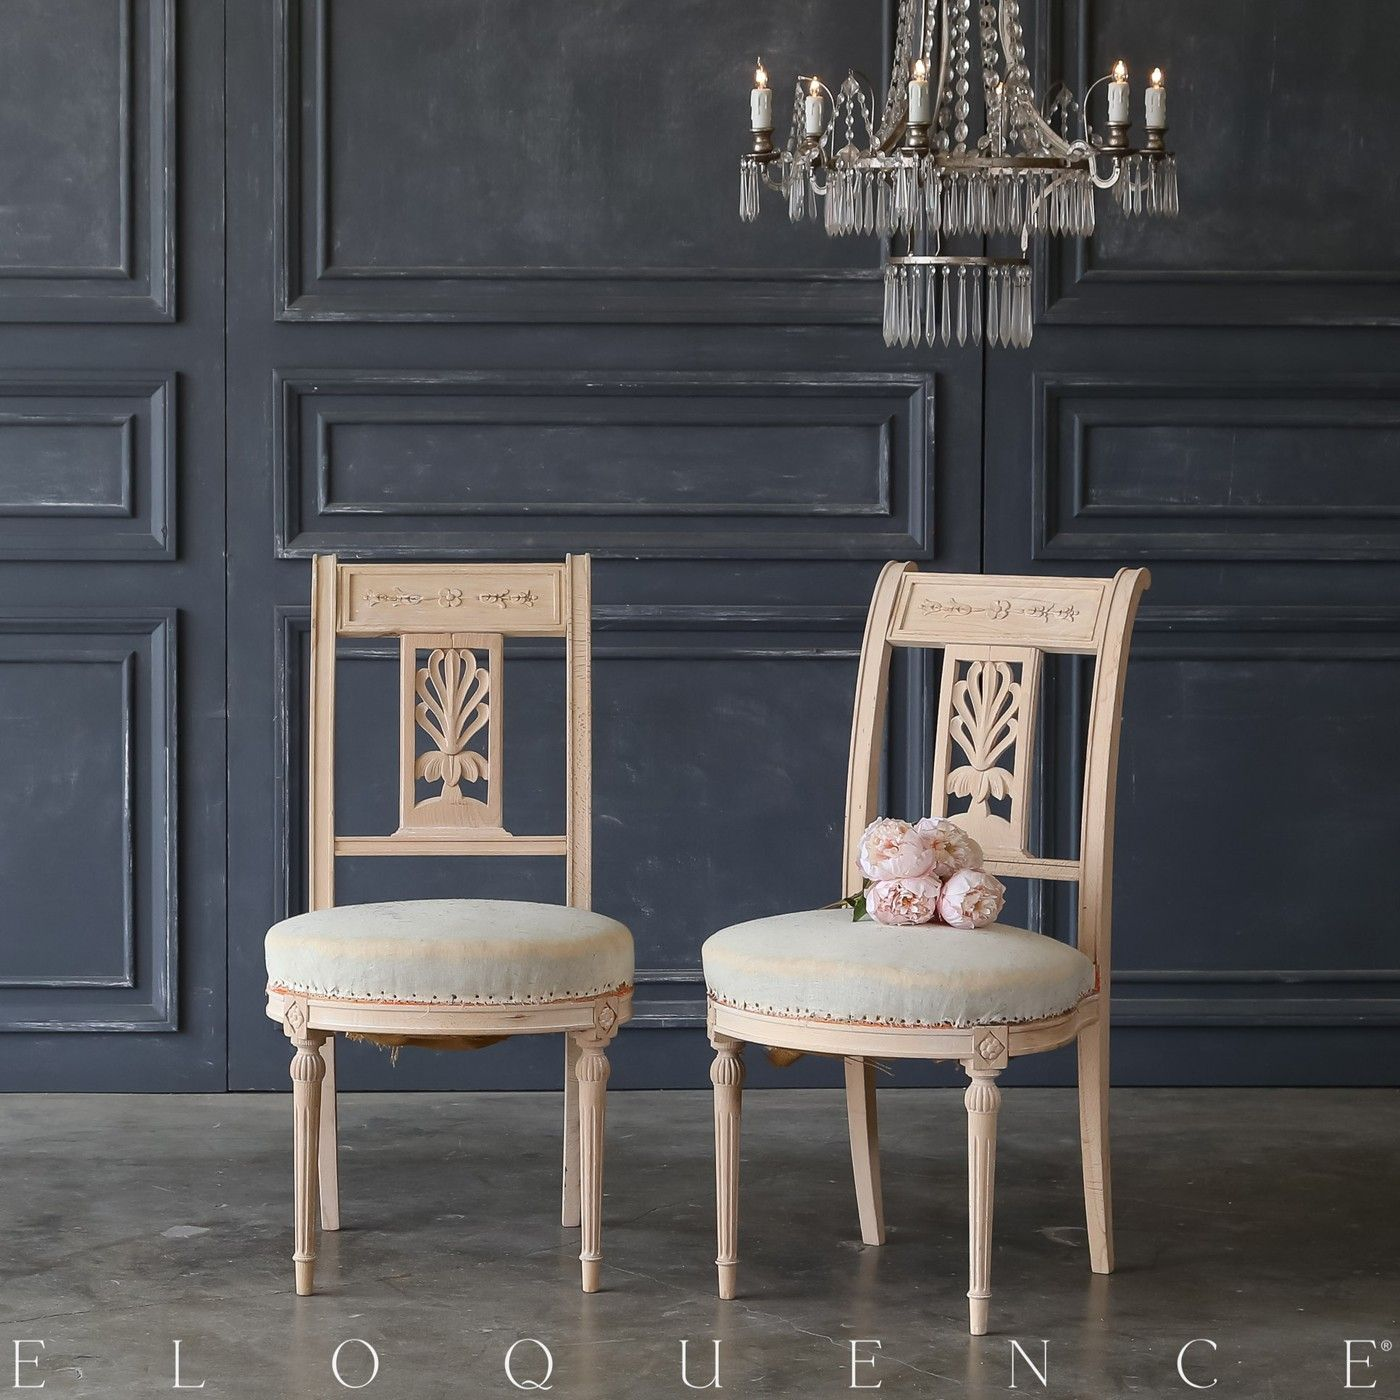 Eloquence Set of 10 Antique Bleached Wood Dining Chairs 1900